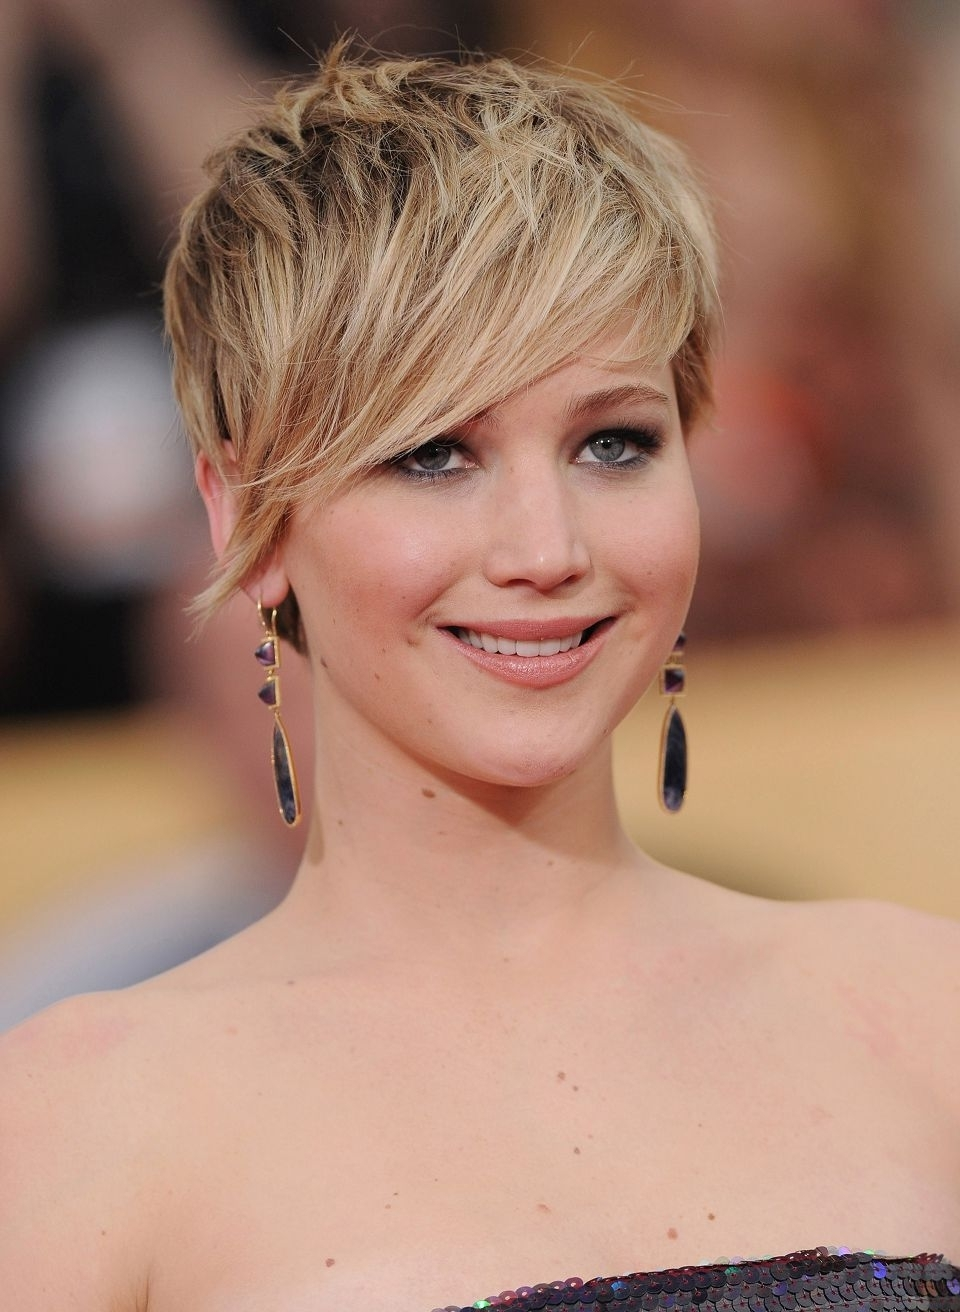 2017 Long Pixie Haircuts For Round Faces Asymmetrical Pixie Cuts New Regarding Widely Used Asymmetrical Long Pixie Hairstyles For Round Faces (View 1 of 20)